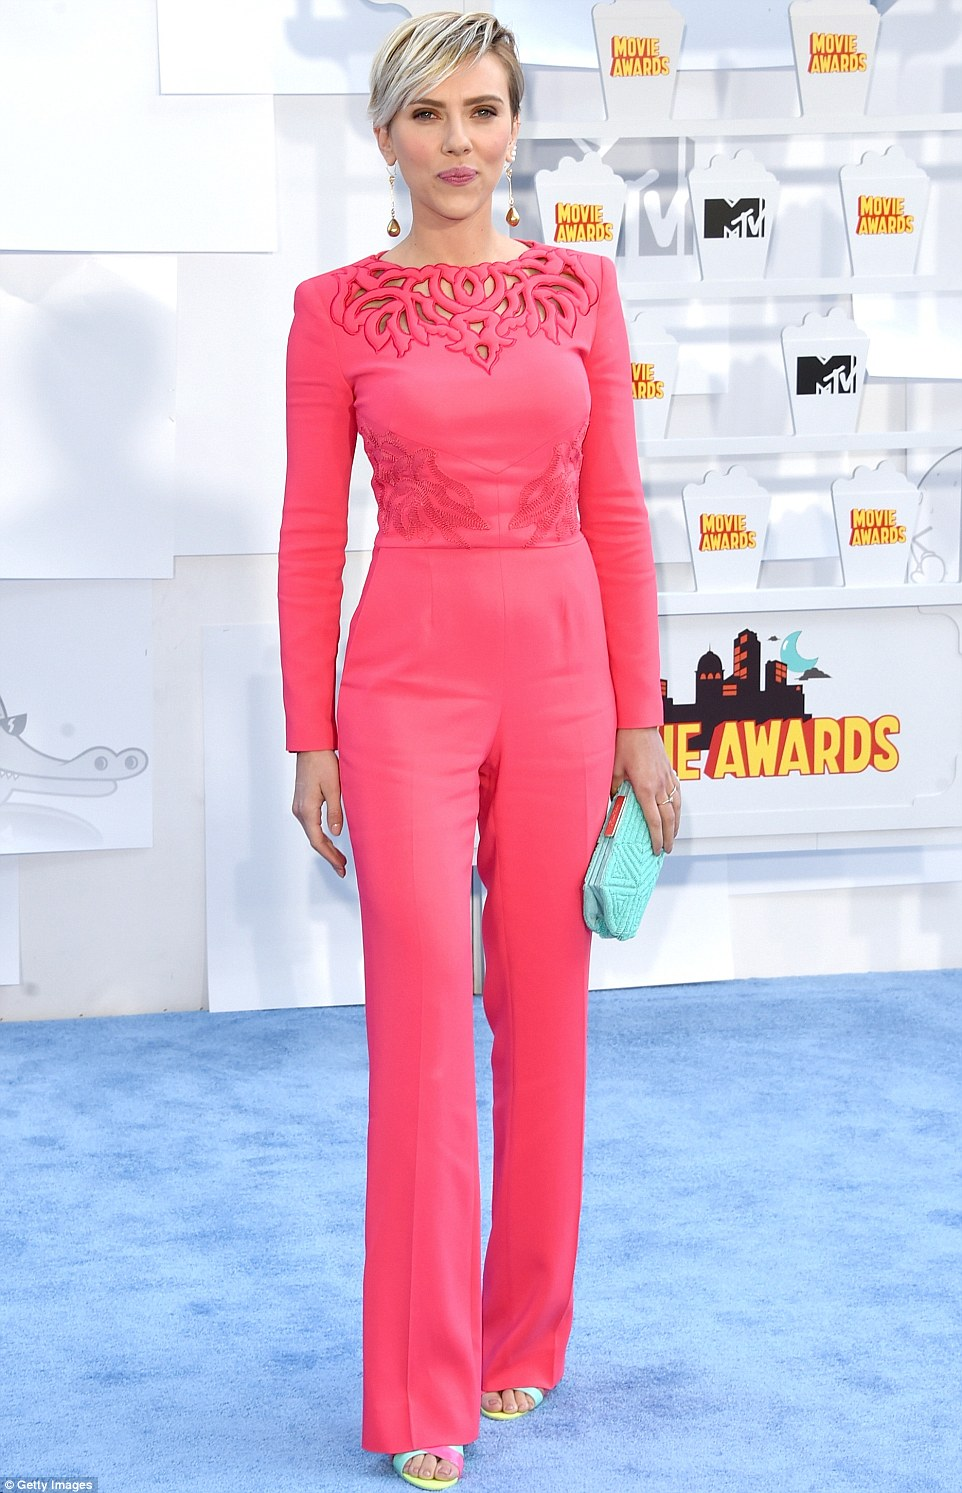 278132C100000578-3036276-Nice_color_The_Avengers_star_stood_out_in_a_coral_jumpsuit_that_-a-12_1428909809671